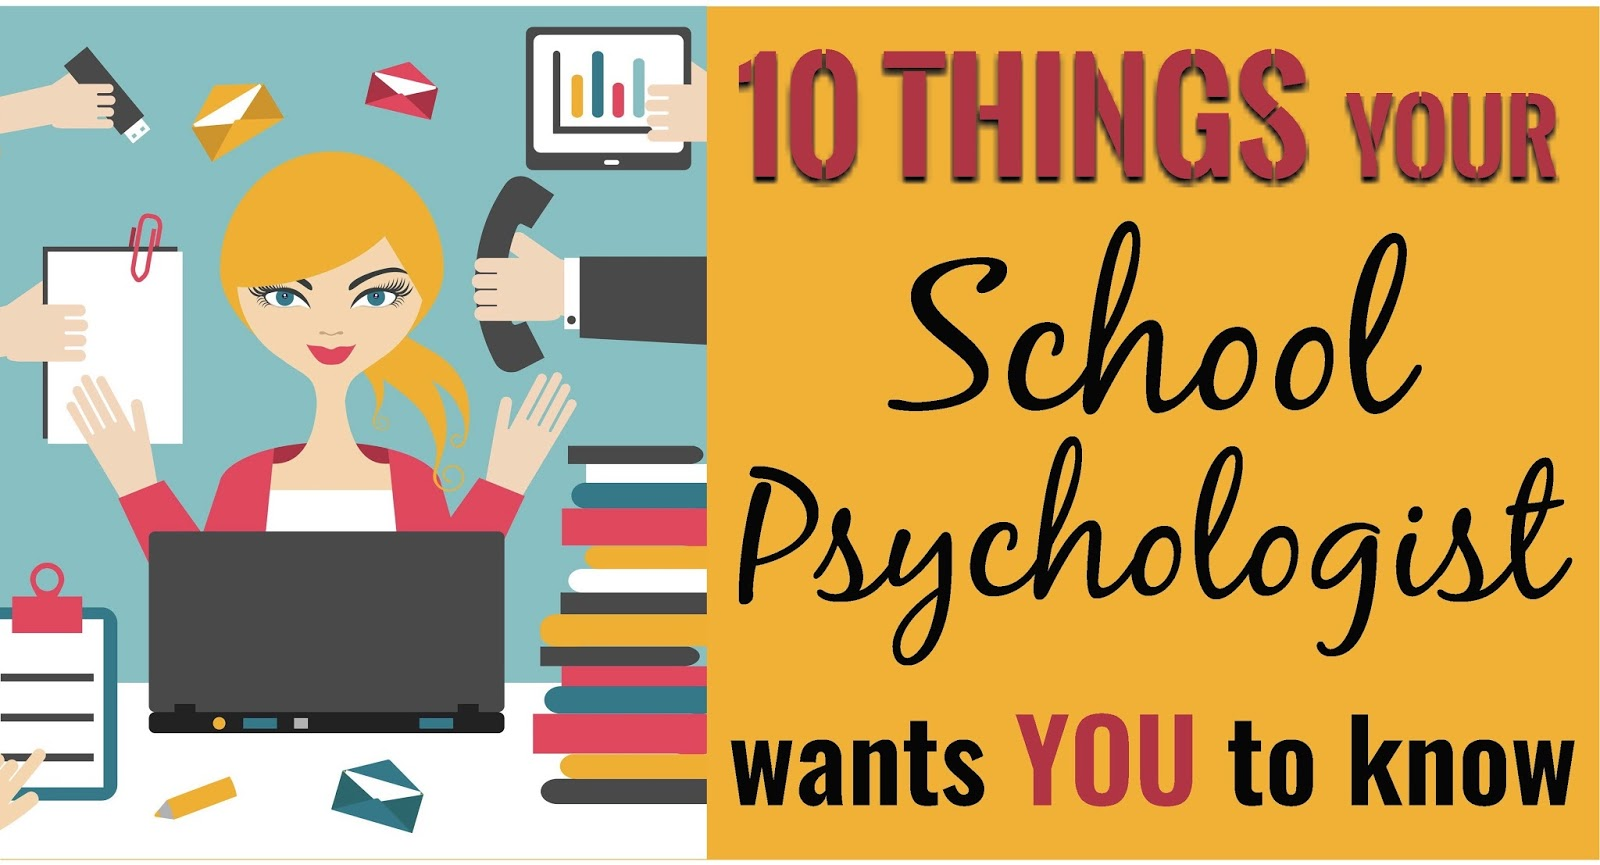 10 things your school psychologist wants you to know